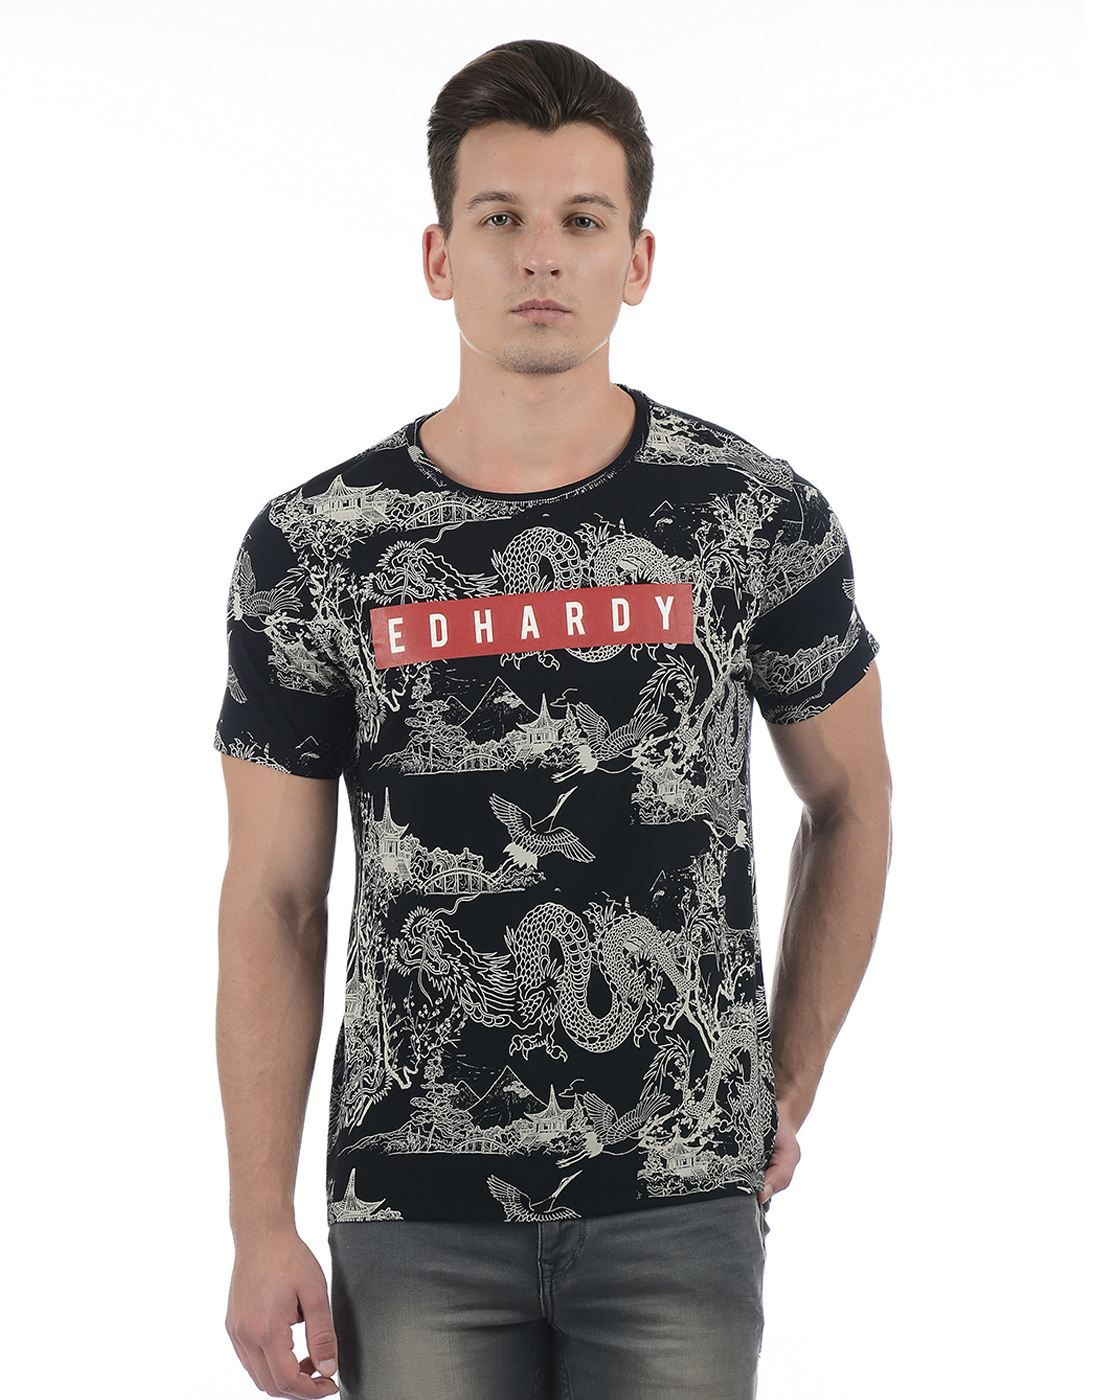 Ed Hardy Men's Black Printed Round Neck T-shirt